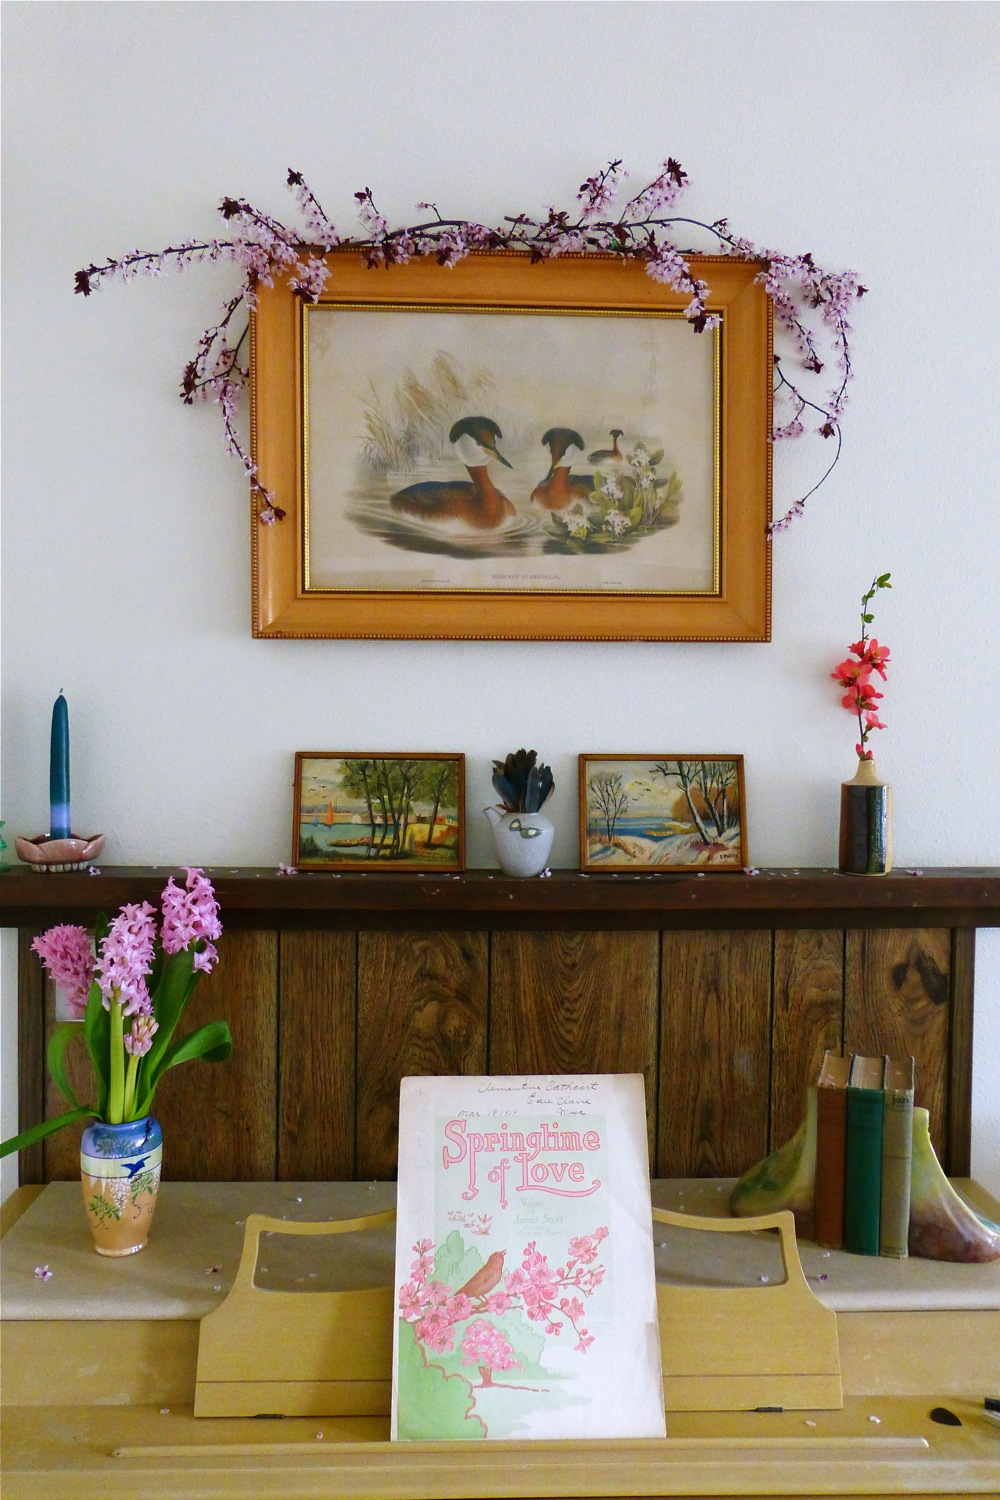 Styling The Season - March, vintage home wares, vintage John Gould print, sakura, blue jay feathers, vintage landscape paintings, hand dipped candles, candle holders, vintage sheet music, Springtime of Love waltz, vintage Japanese ceramics, cherry blossoms, hyacinths, quince, Wurlitzer piano, Epiphone mandolin